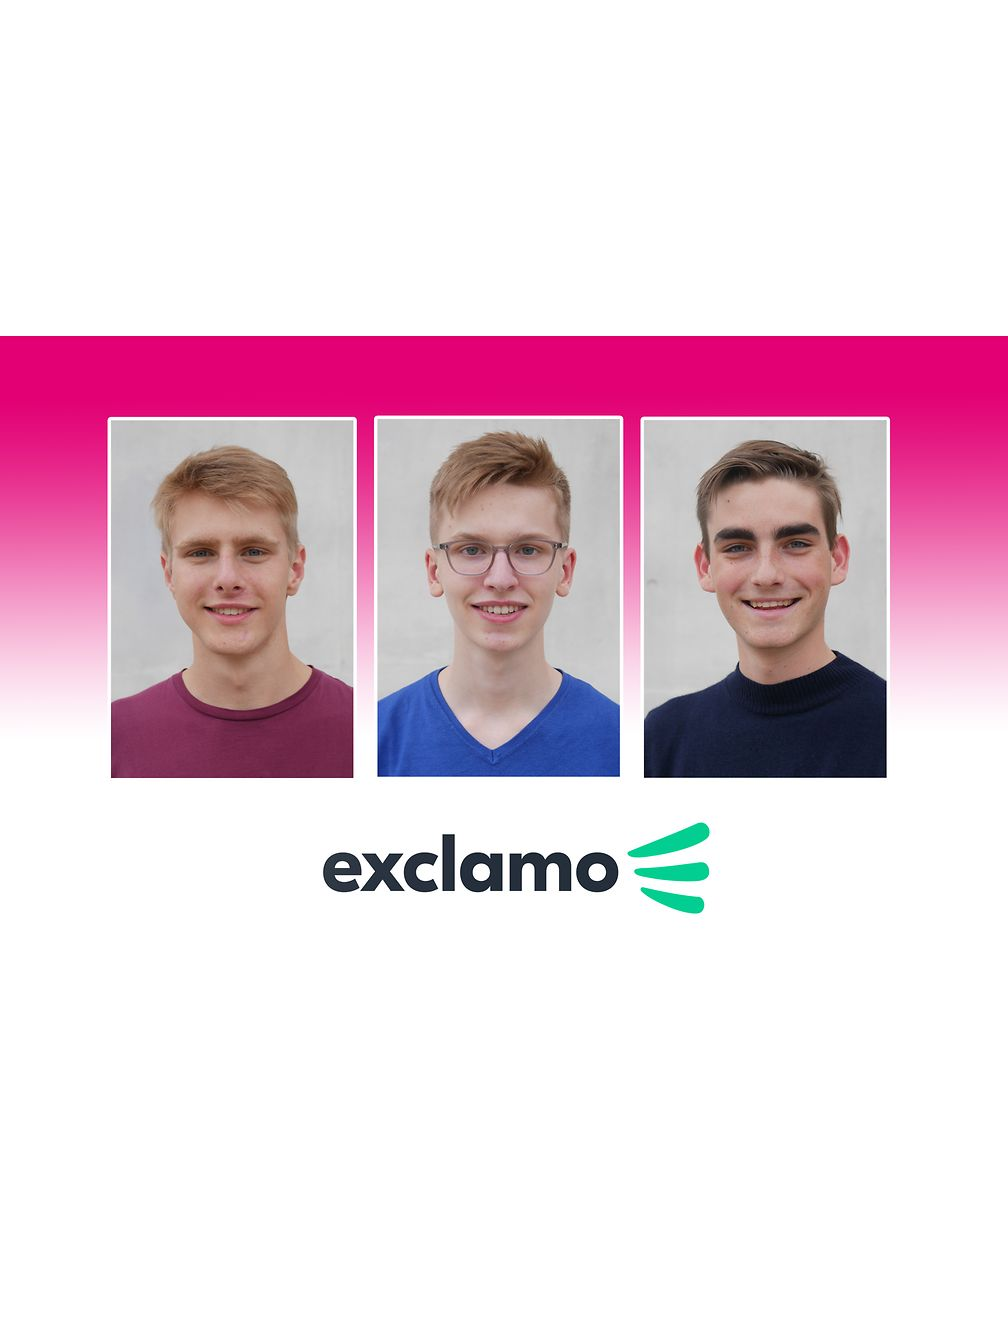 Anti-bullying app exclamo gives students someone to turn to